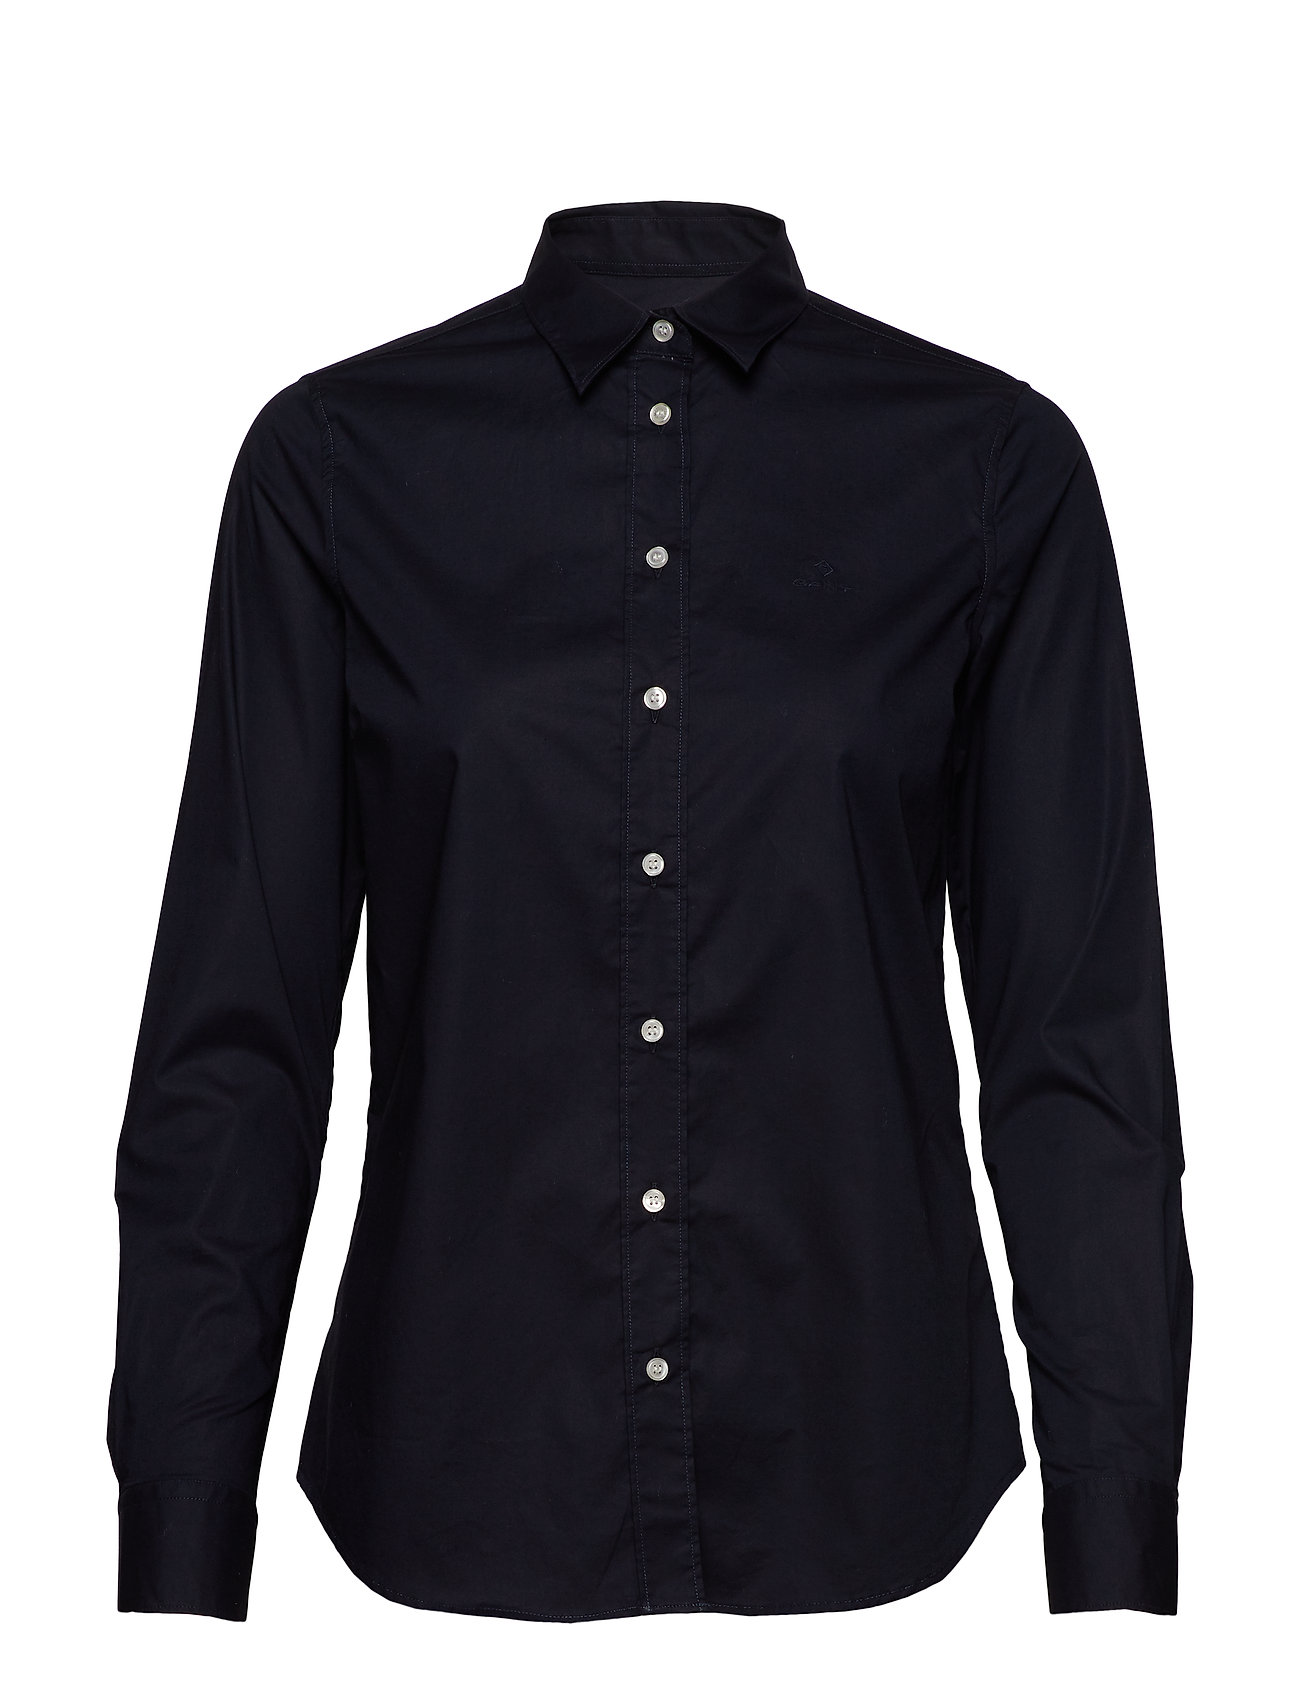 Gant SOLID STRETCH BROADCLOTH SHIRT - EVENING BLUE